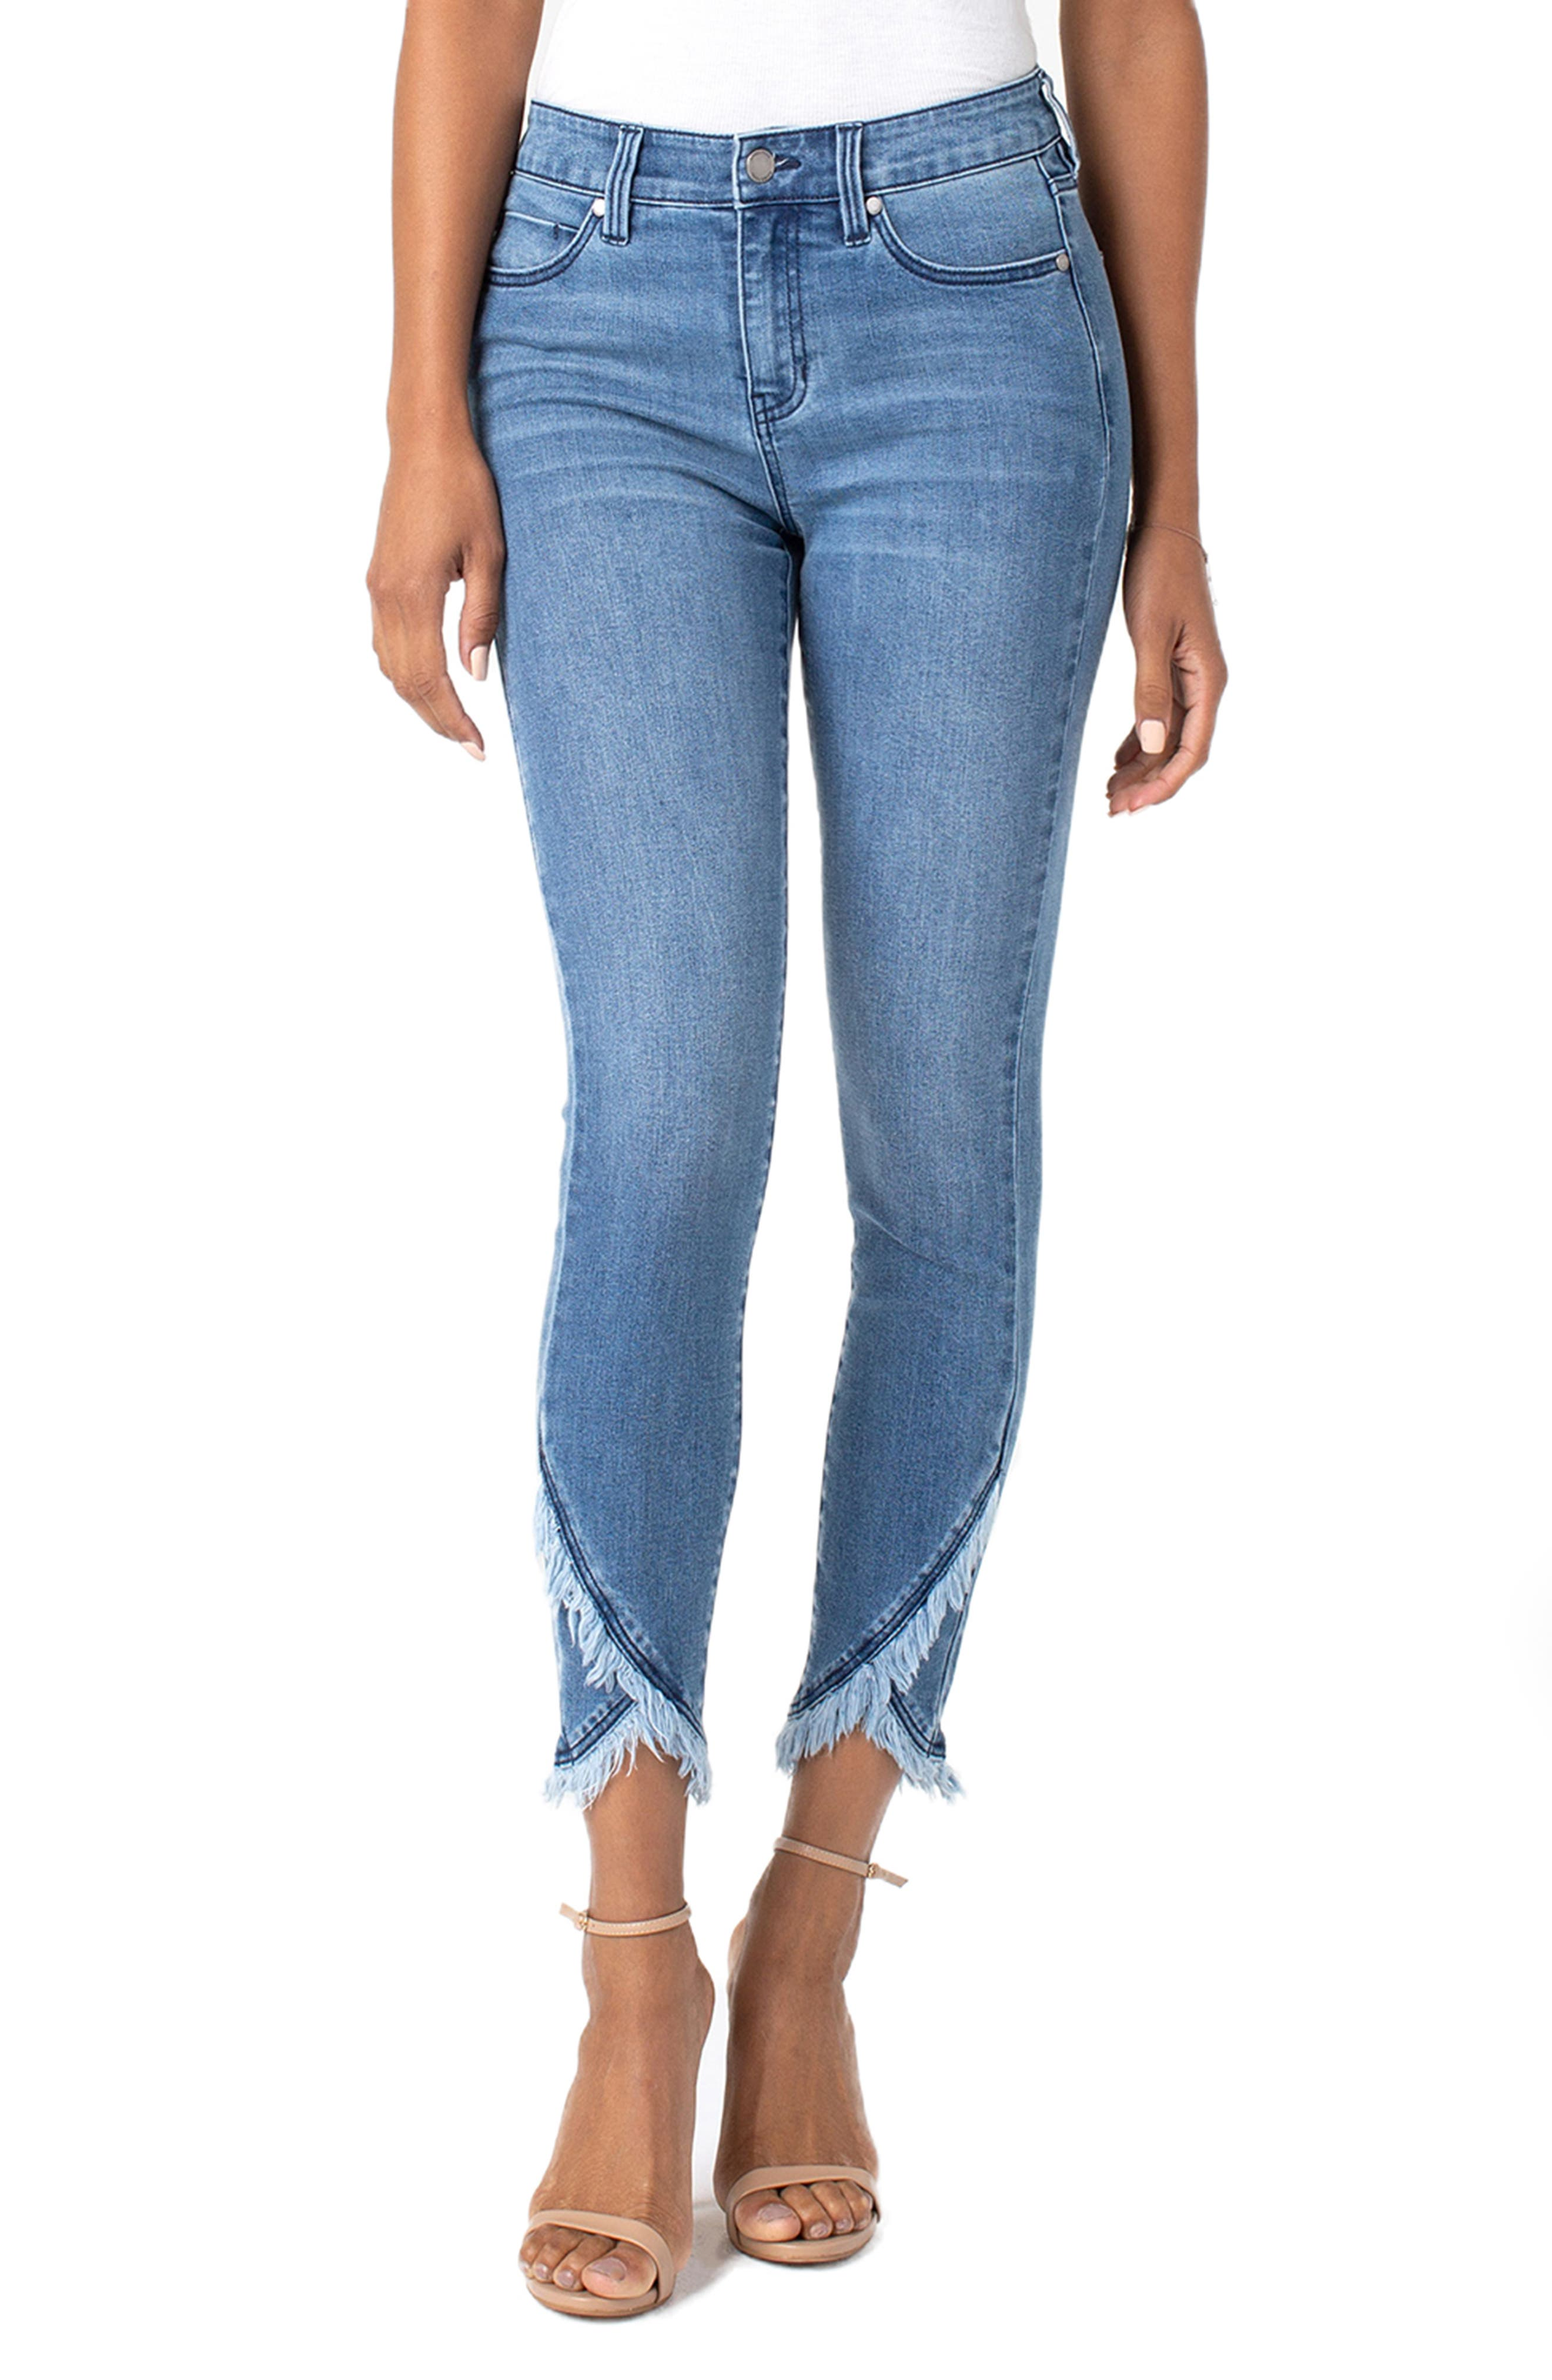 Liverpool Jeans ABBY SCALLOP HEM CROP SKINNY JEANS